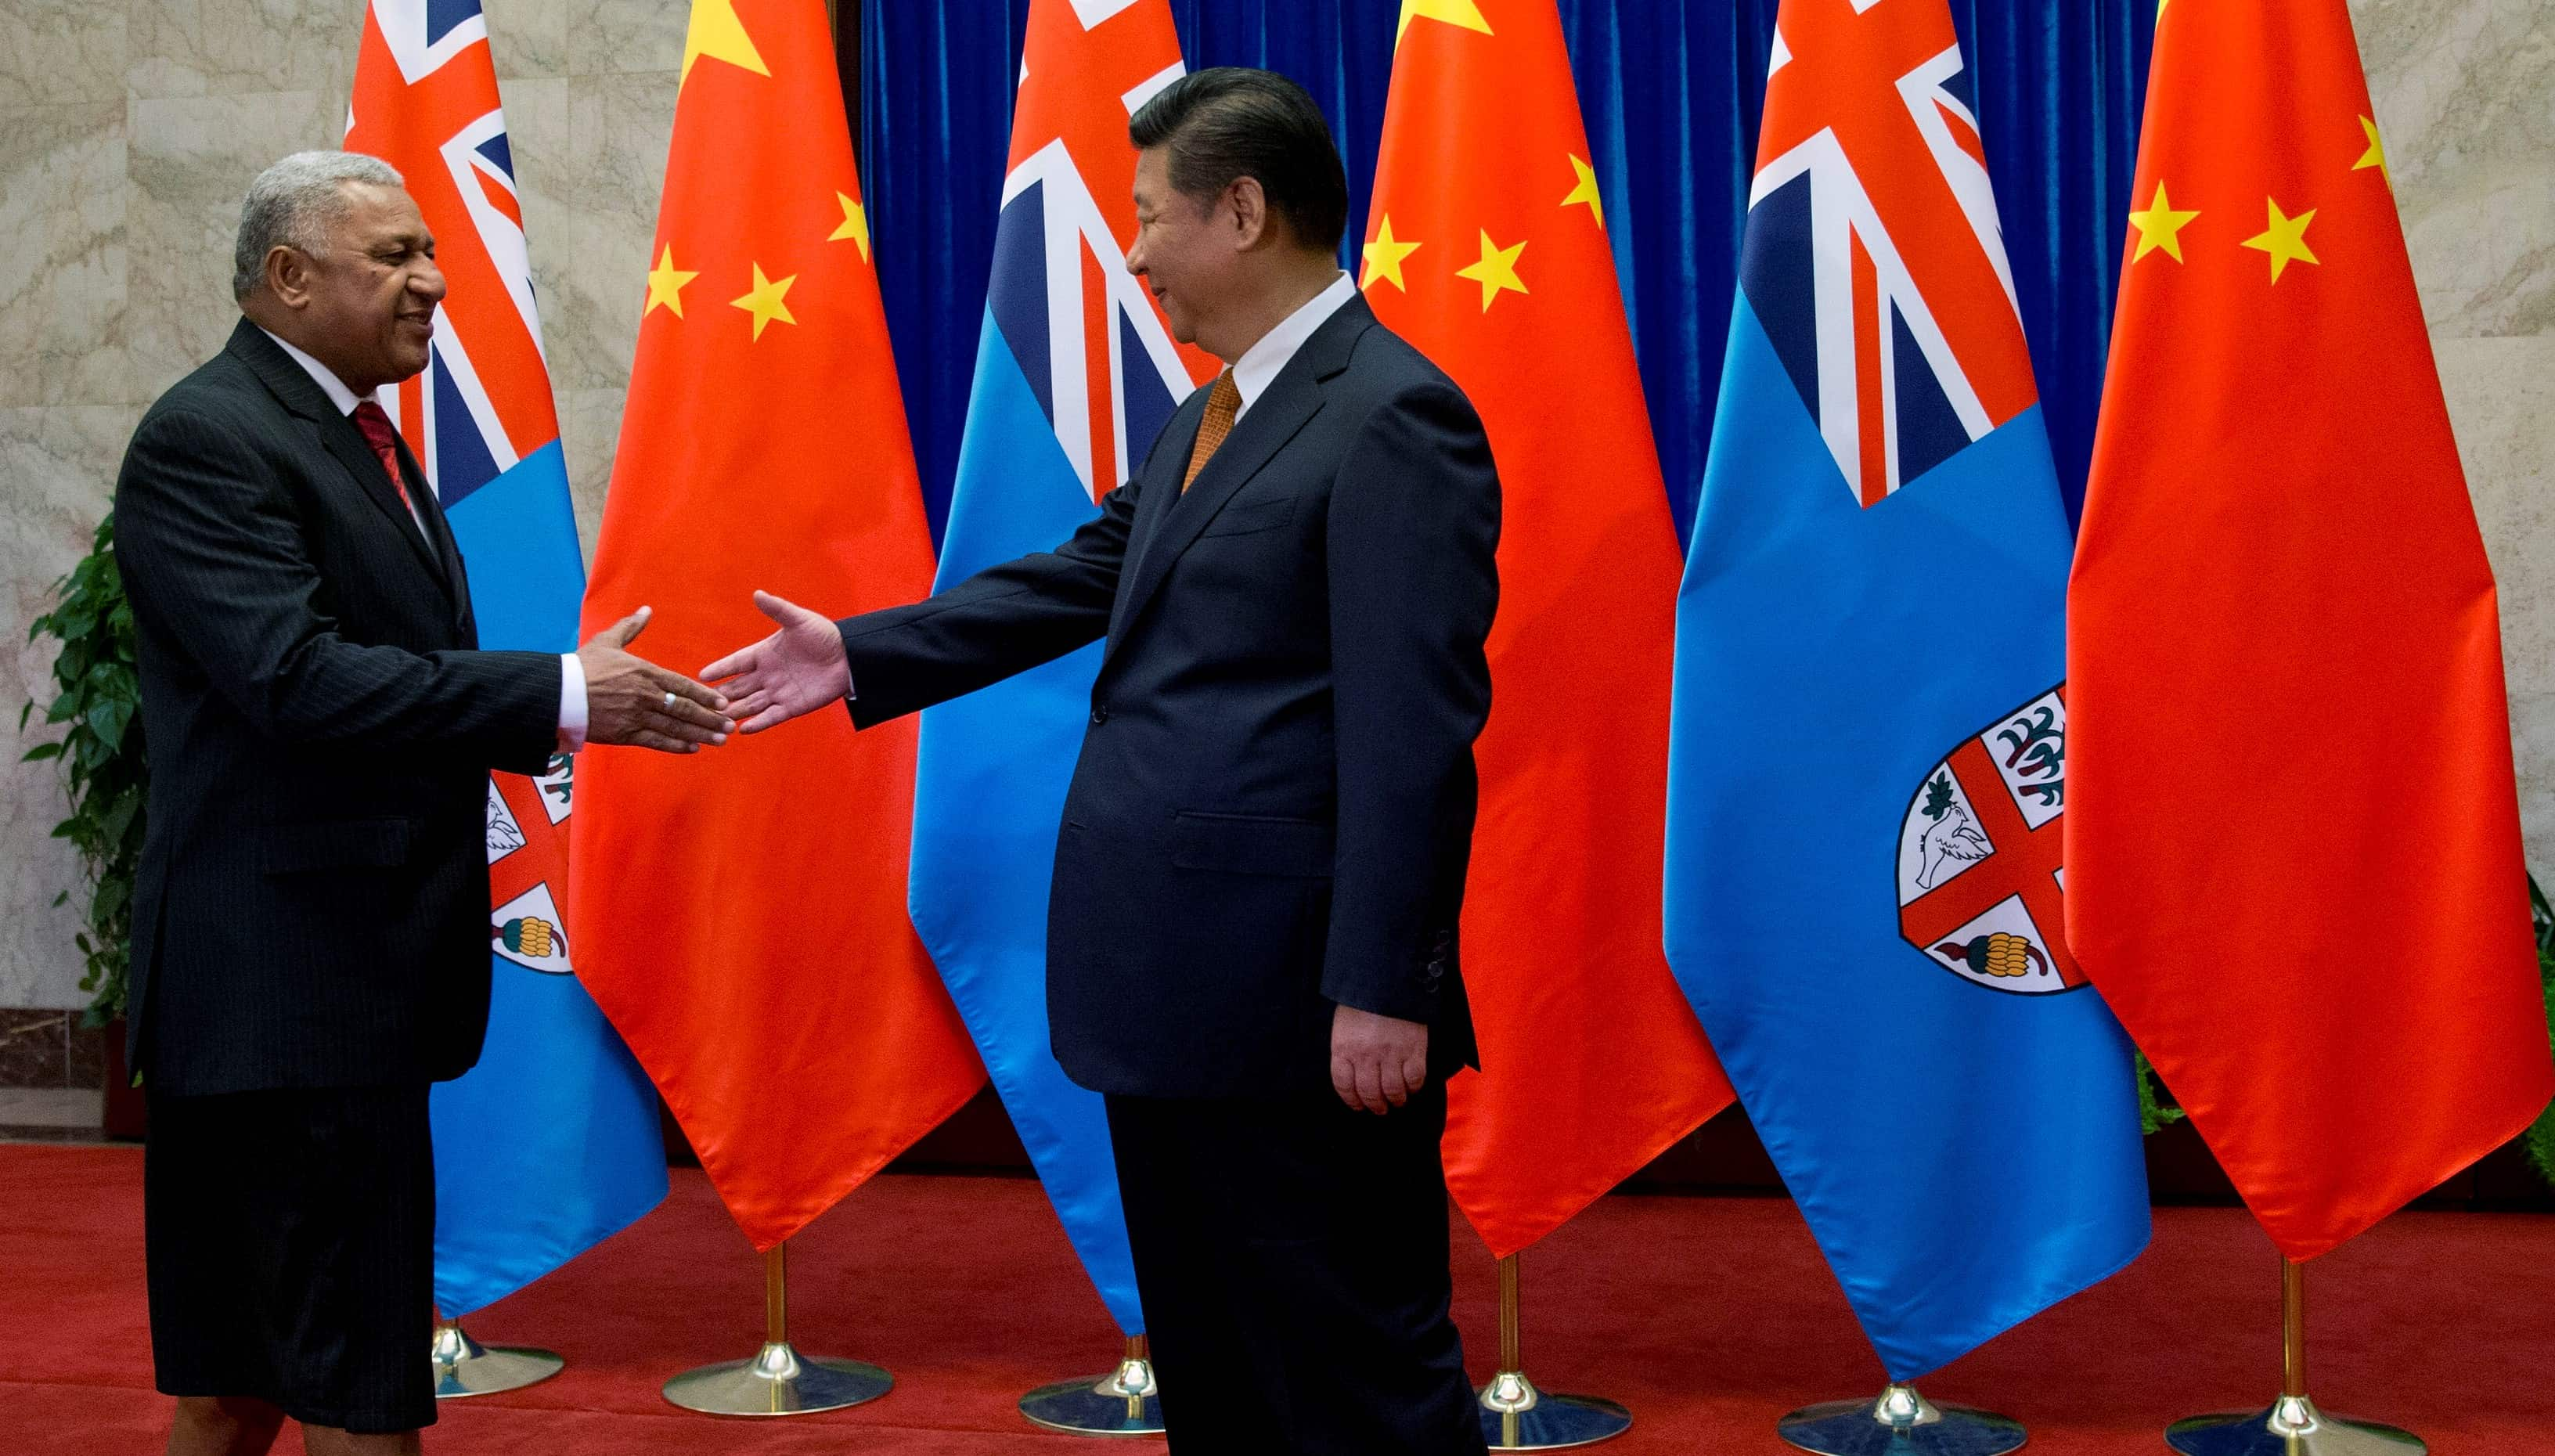 Fijian Prime Minister Frank Bainimarama and Chinese President Xi Jinping, July 2015 (Photo: Andy Wong/Getty Images)